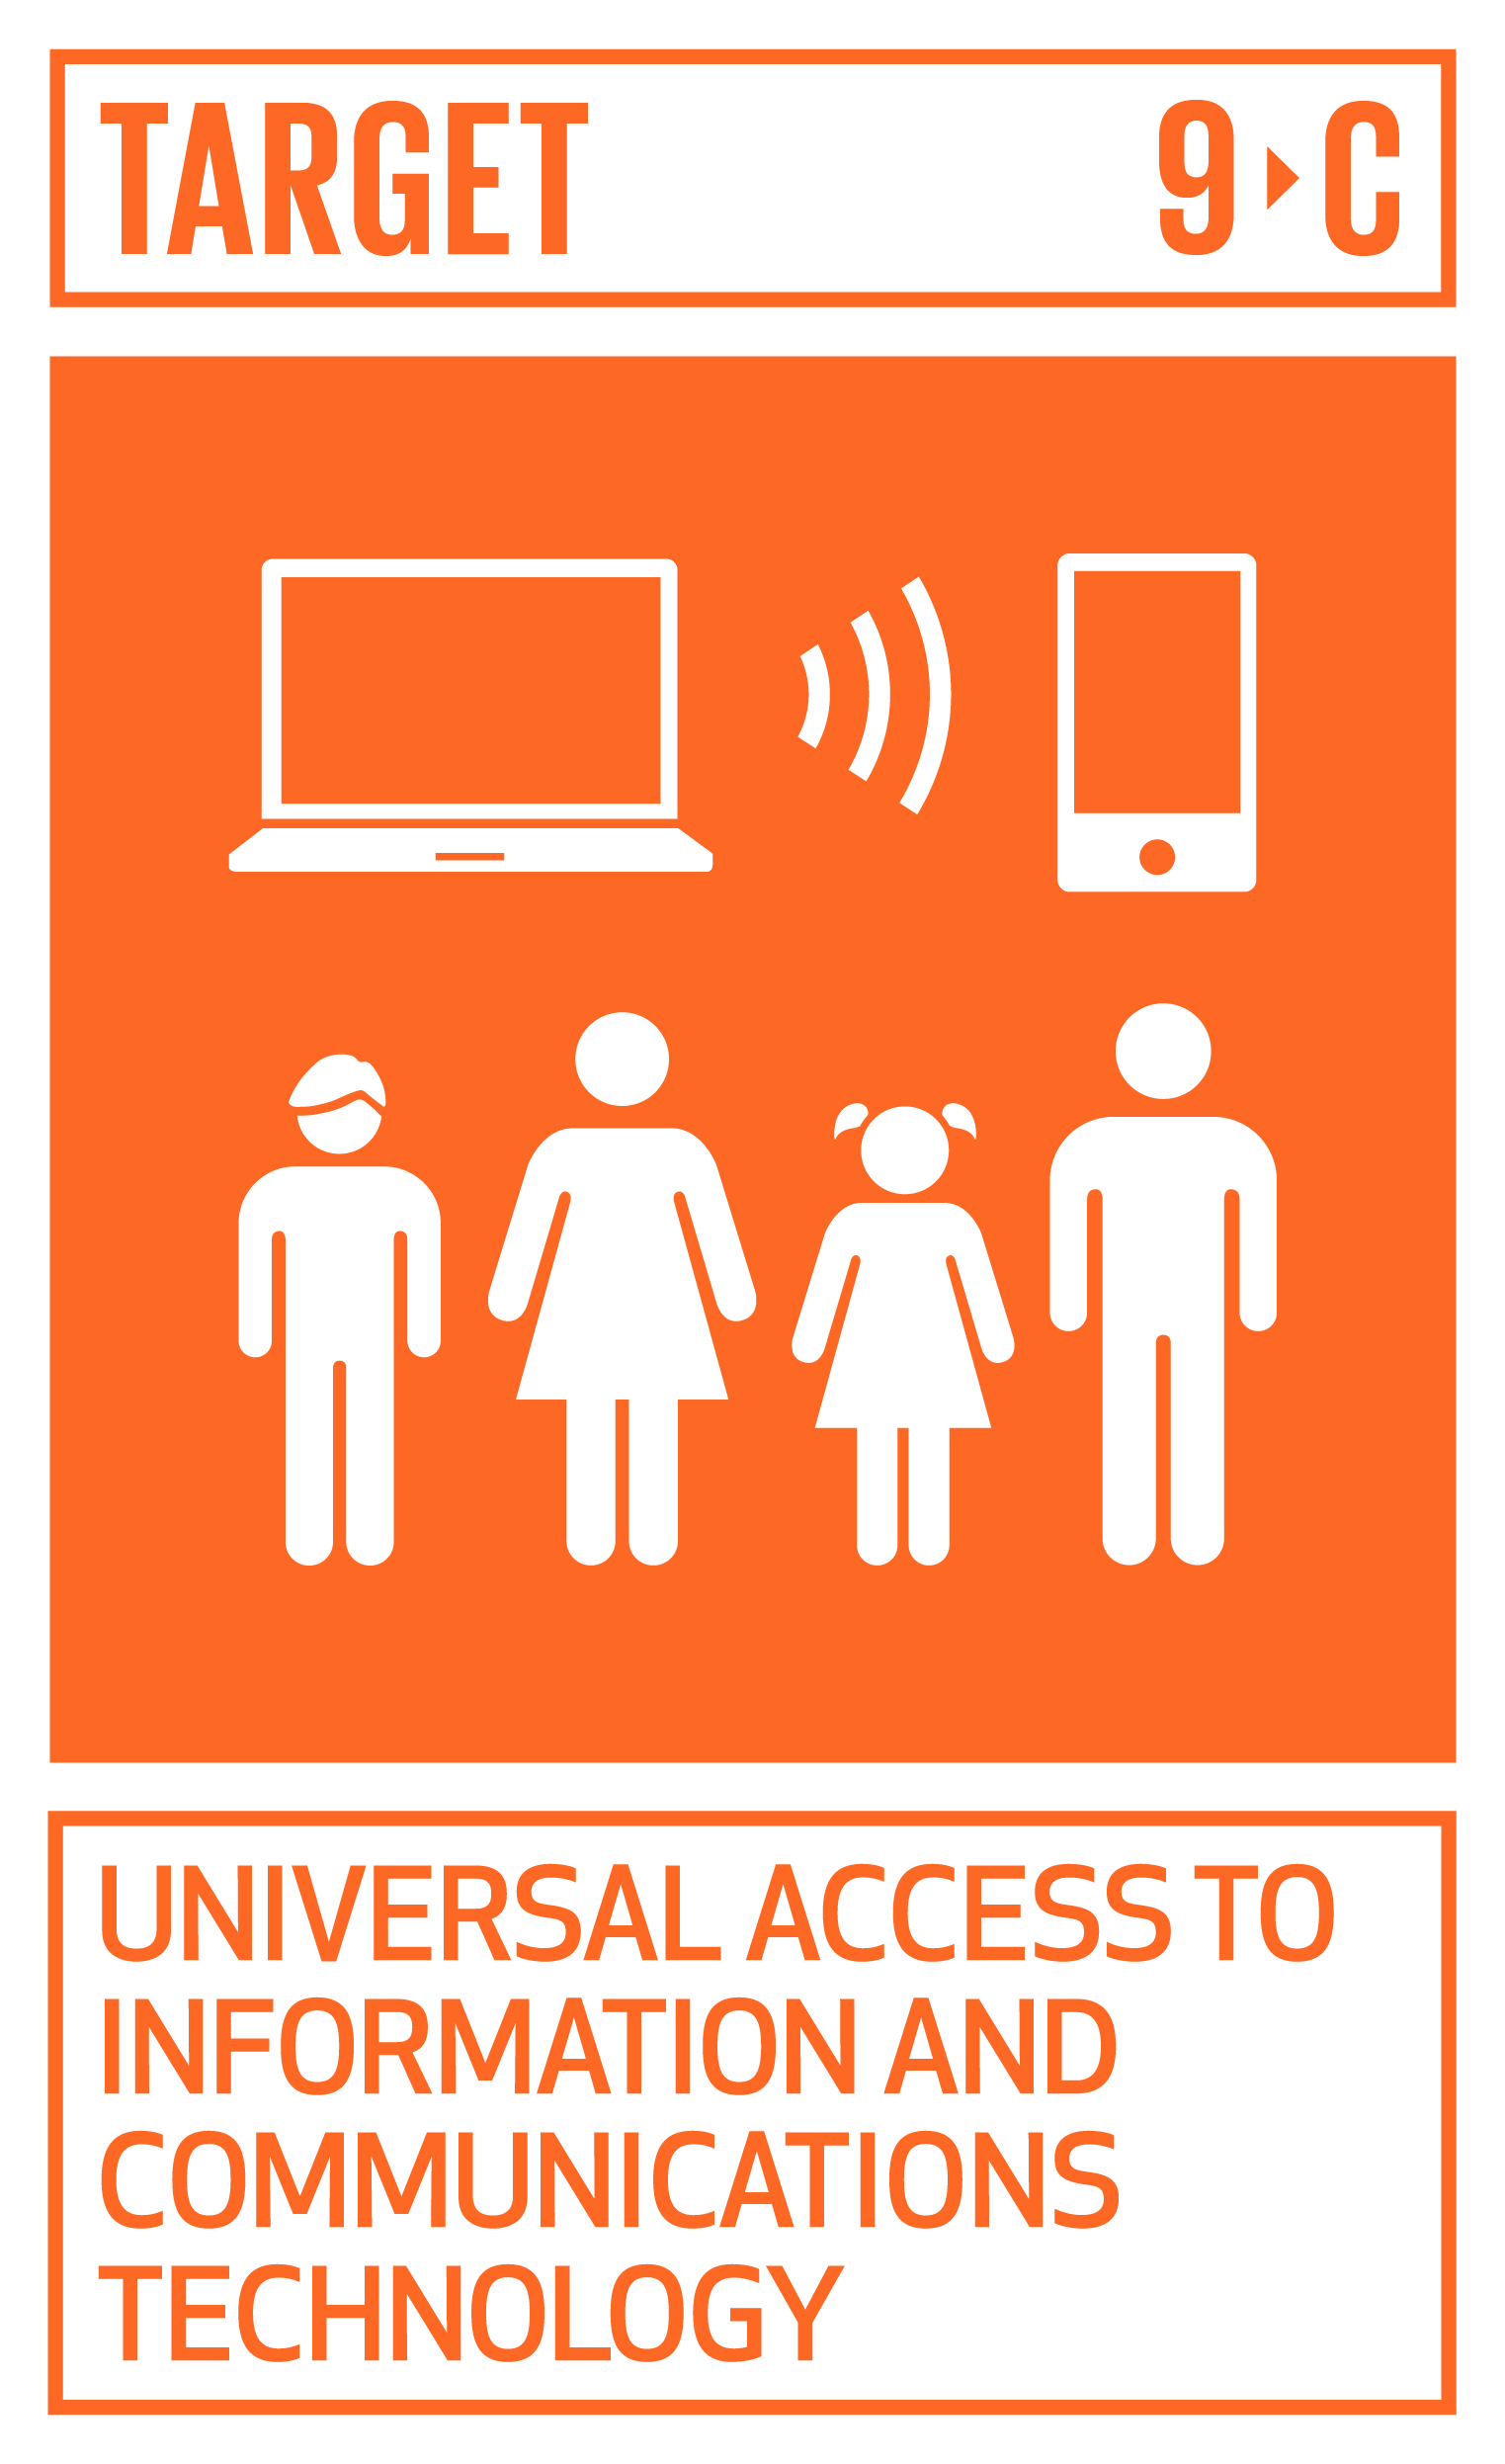 Significantly increase access to information and communications technology and strive to provide universal and affordable access to the Internet in least developed countries by 2020.   INDICATOR    9.c.1  Proportion of population covered by a mobile network, by technology